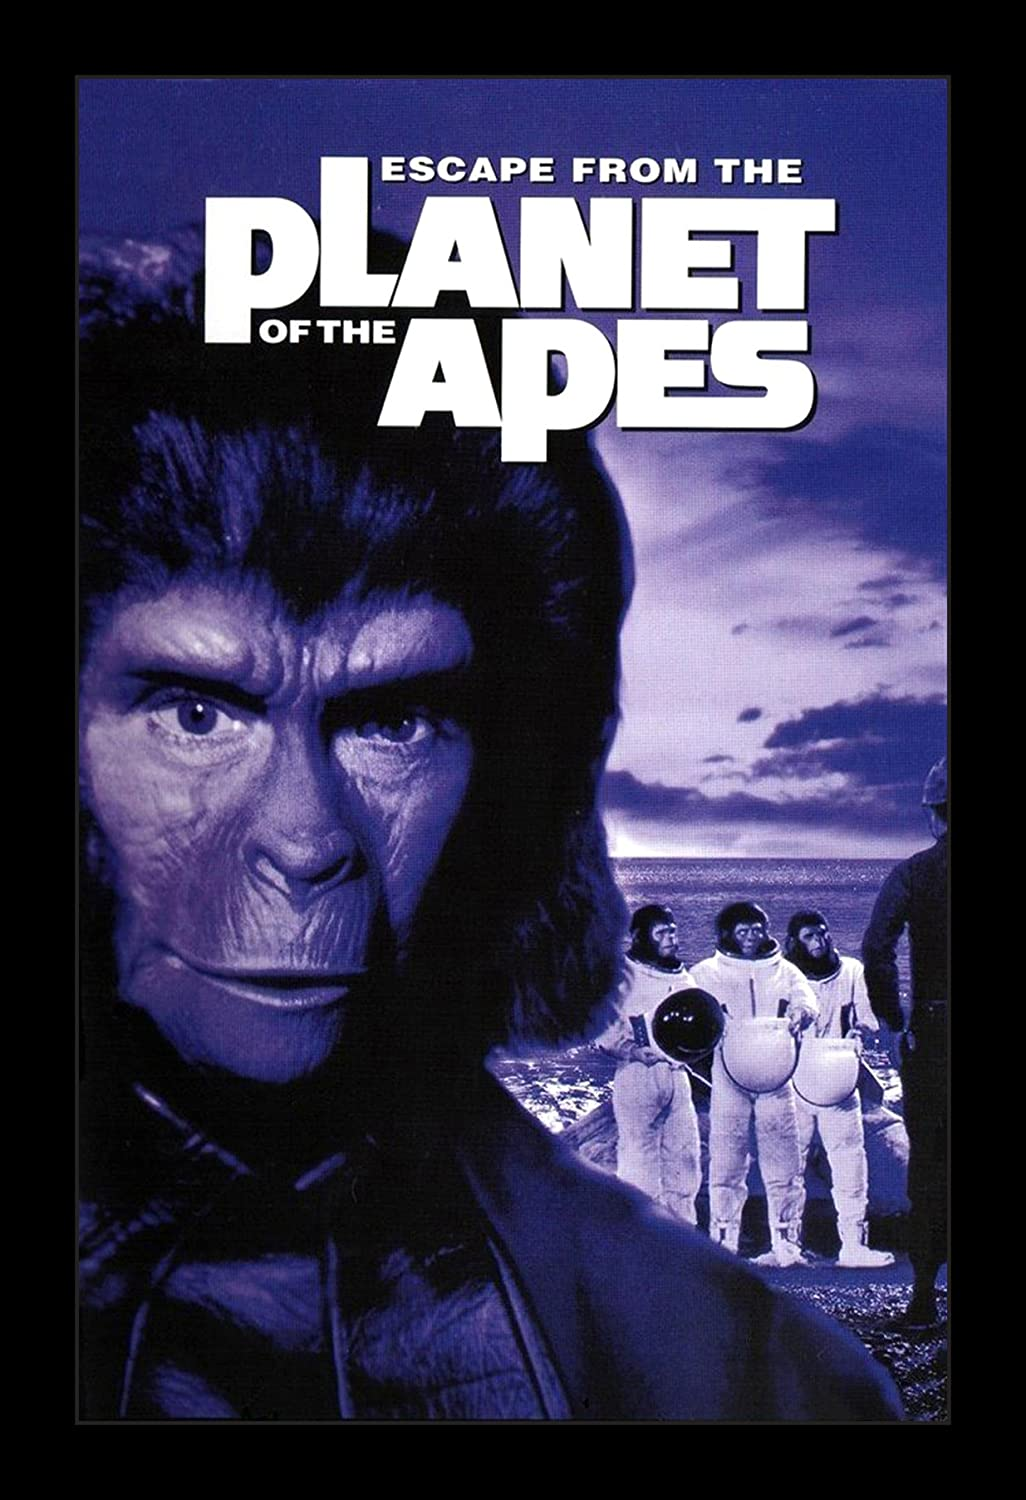 Escape From The Planet Of The Apes - 11x17 Framed Movie Poster by Wallspace